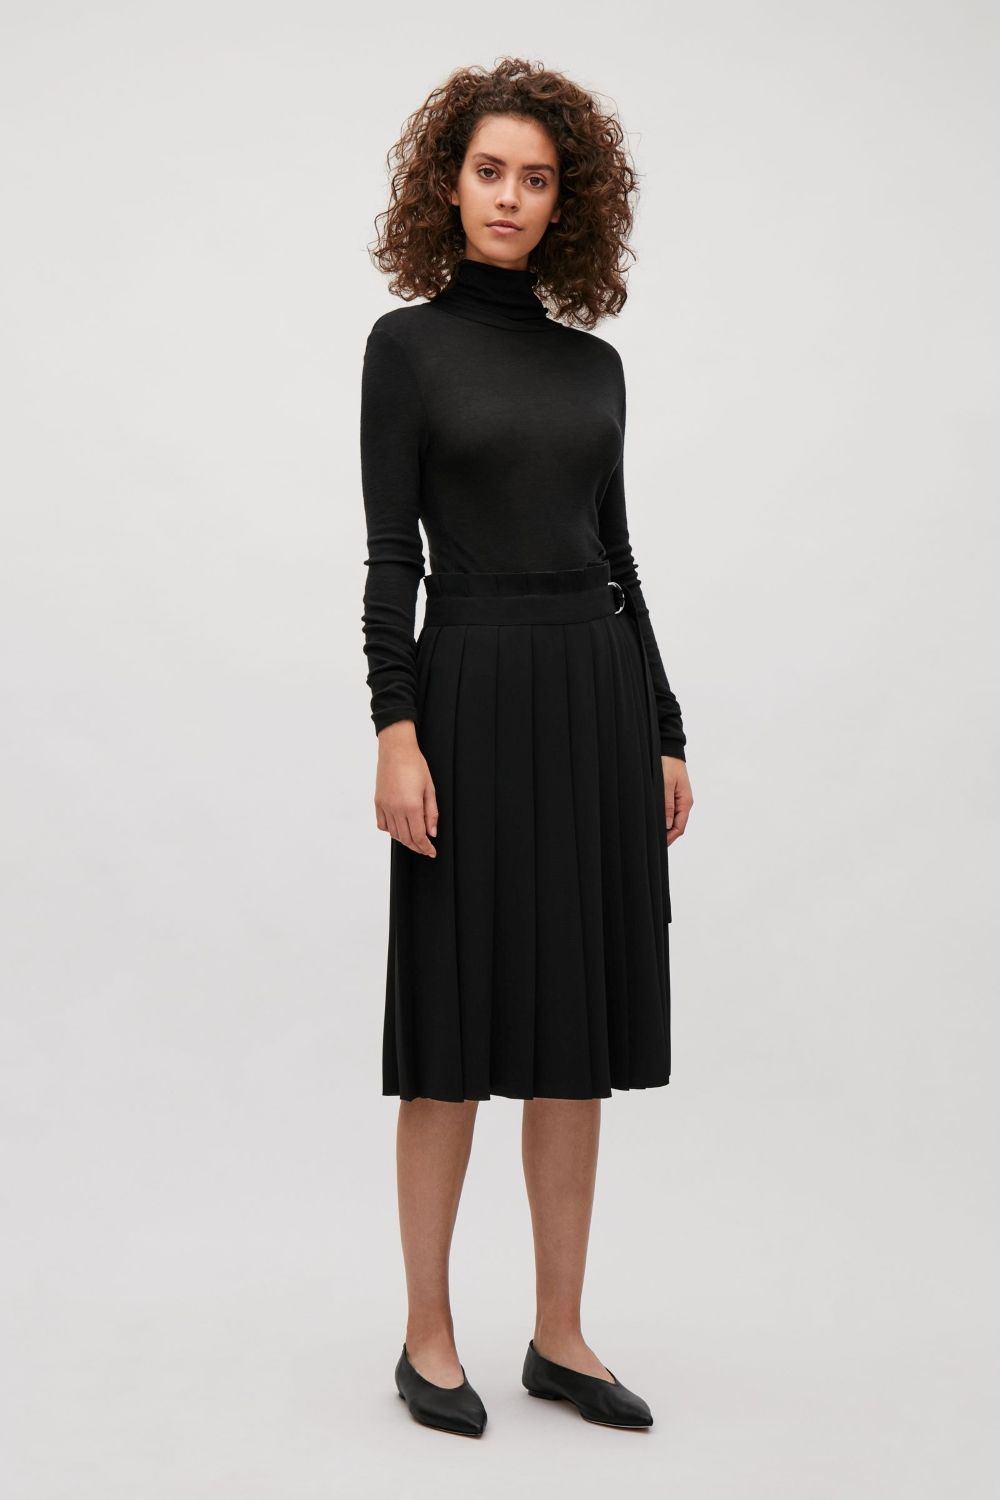 A wrap-over style, this skirt is made from a crepe material with deep pleats. Designed with a D-ring fabric belt, it has two inside buttons for an adjustable waist, a simple, straight hemline and laser cut finishes.